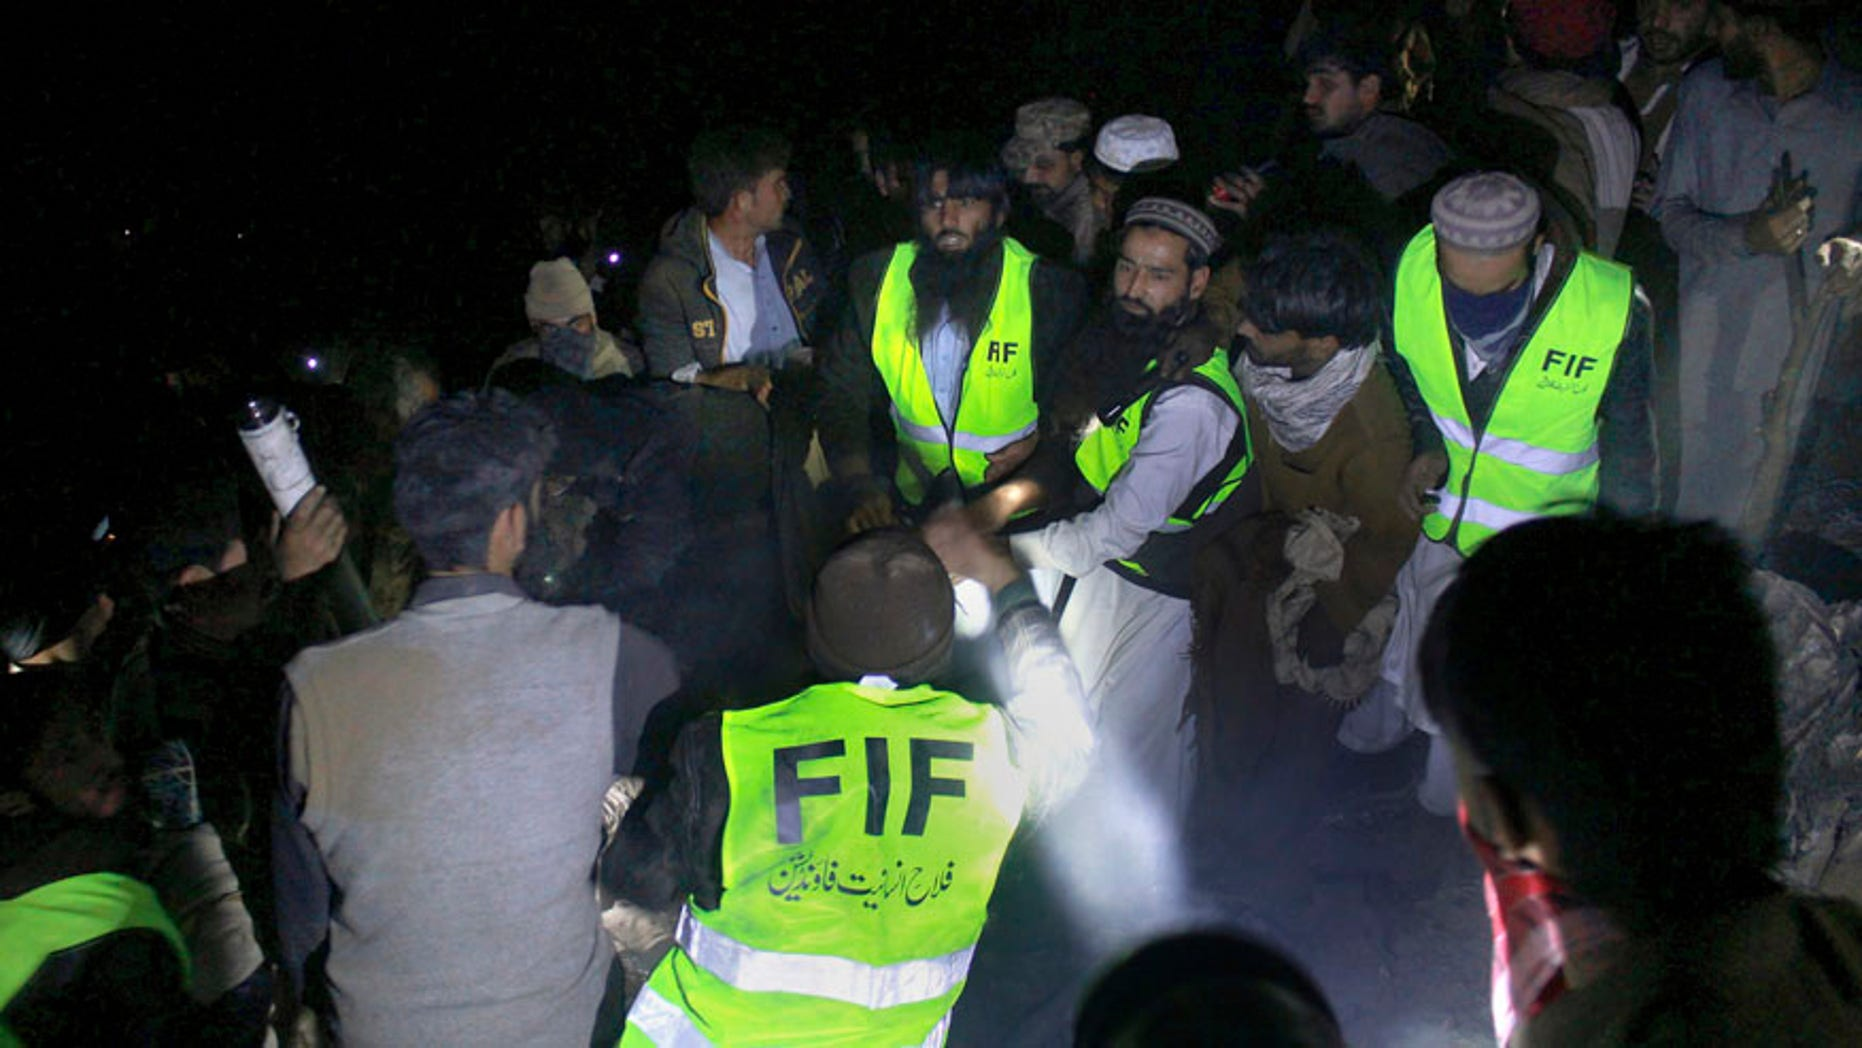 Pakistan army troops and rescue workers collect remains of victims at the site of a plane crash, in a village near the town of Havelian, about 75 kilometers (45 miles) northwest of the capital, Islamabad, Pakistan, Wednesday, Dec. 7, 2016.